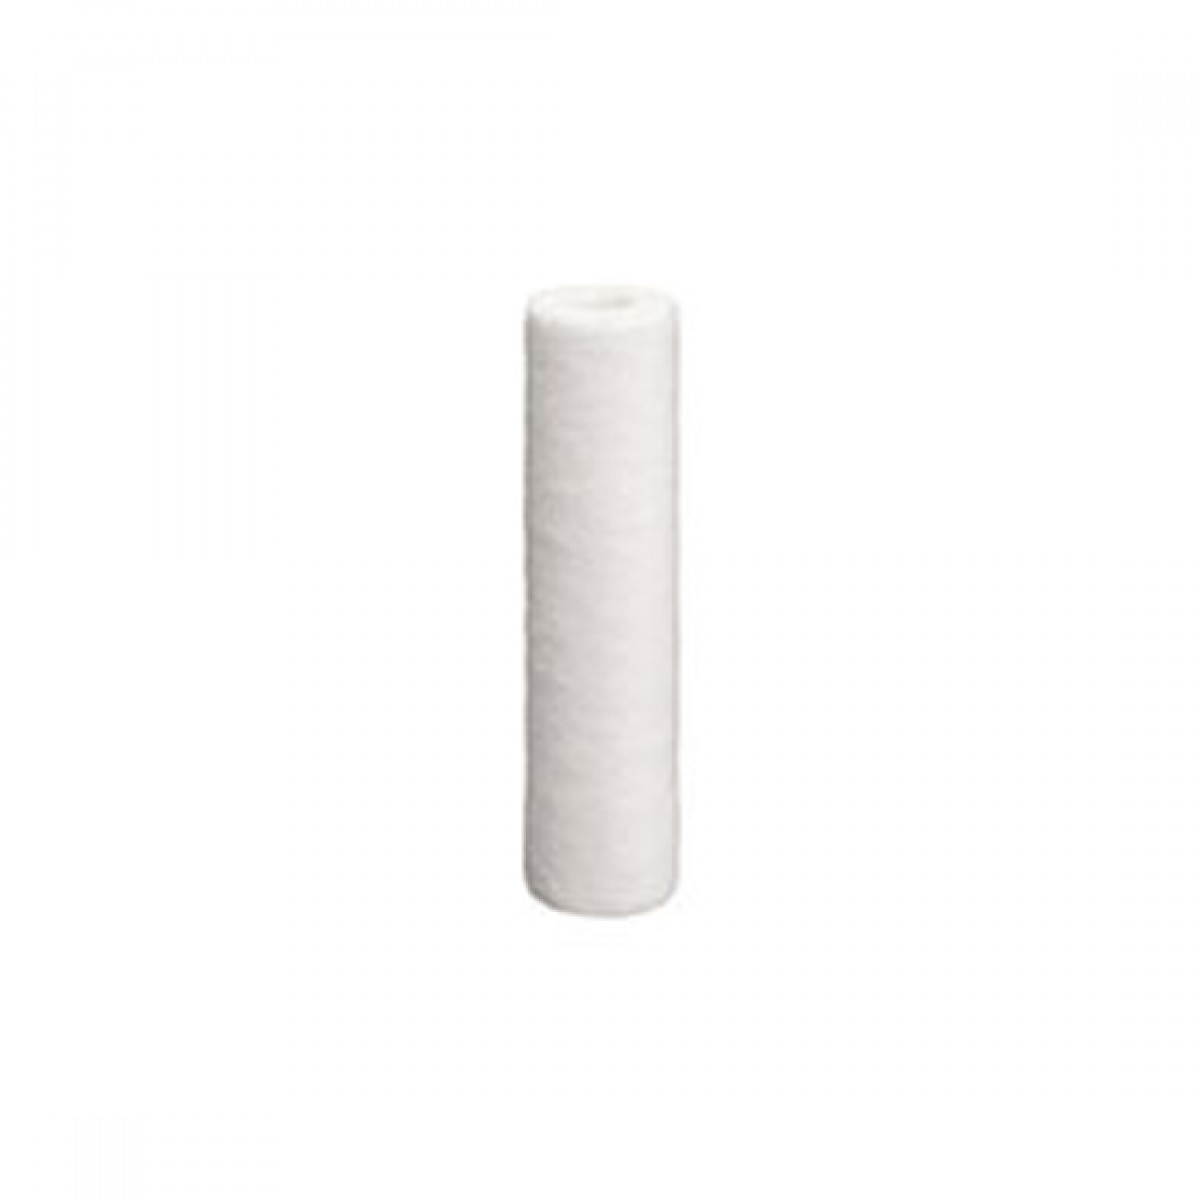 SDC-25-1005 Hydronix Whole House Replacement Sediment Filter Cartridge